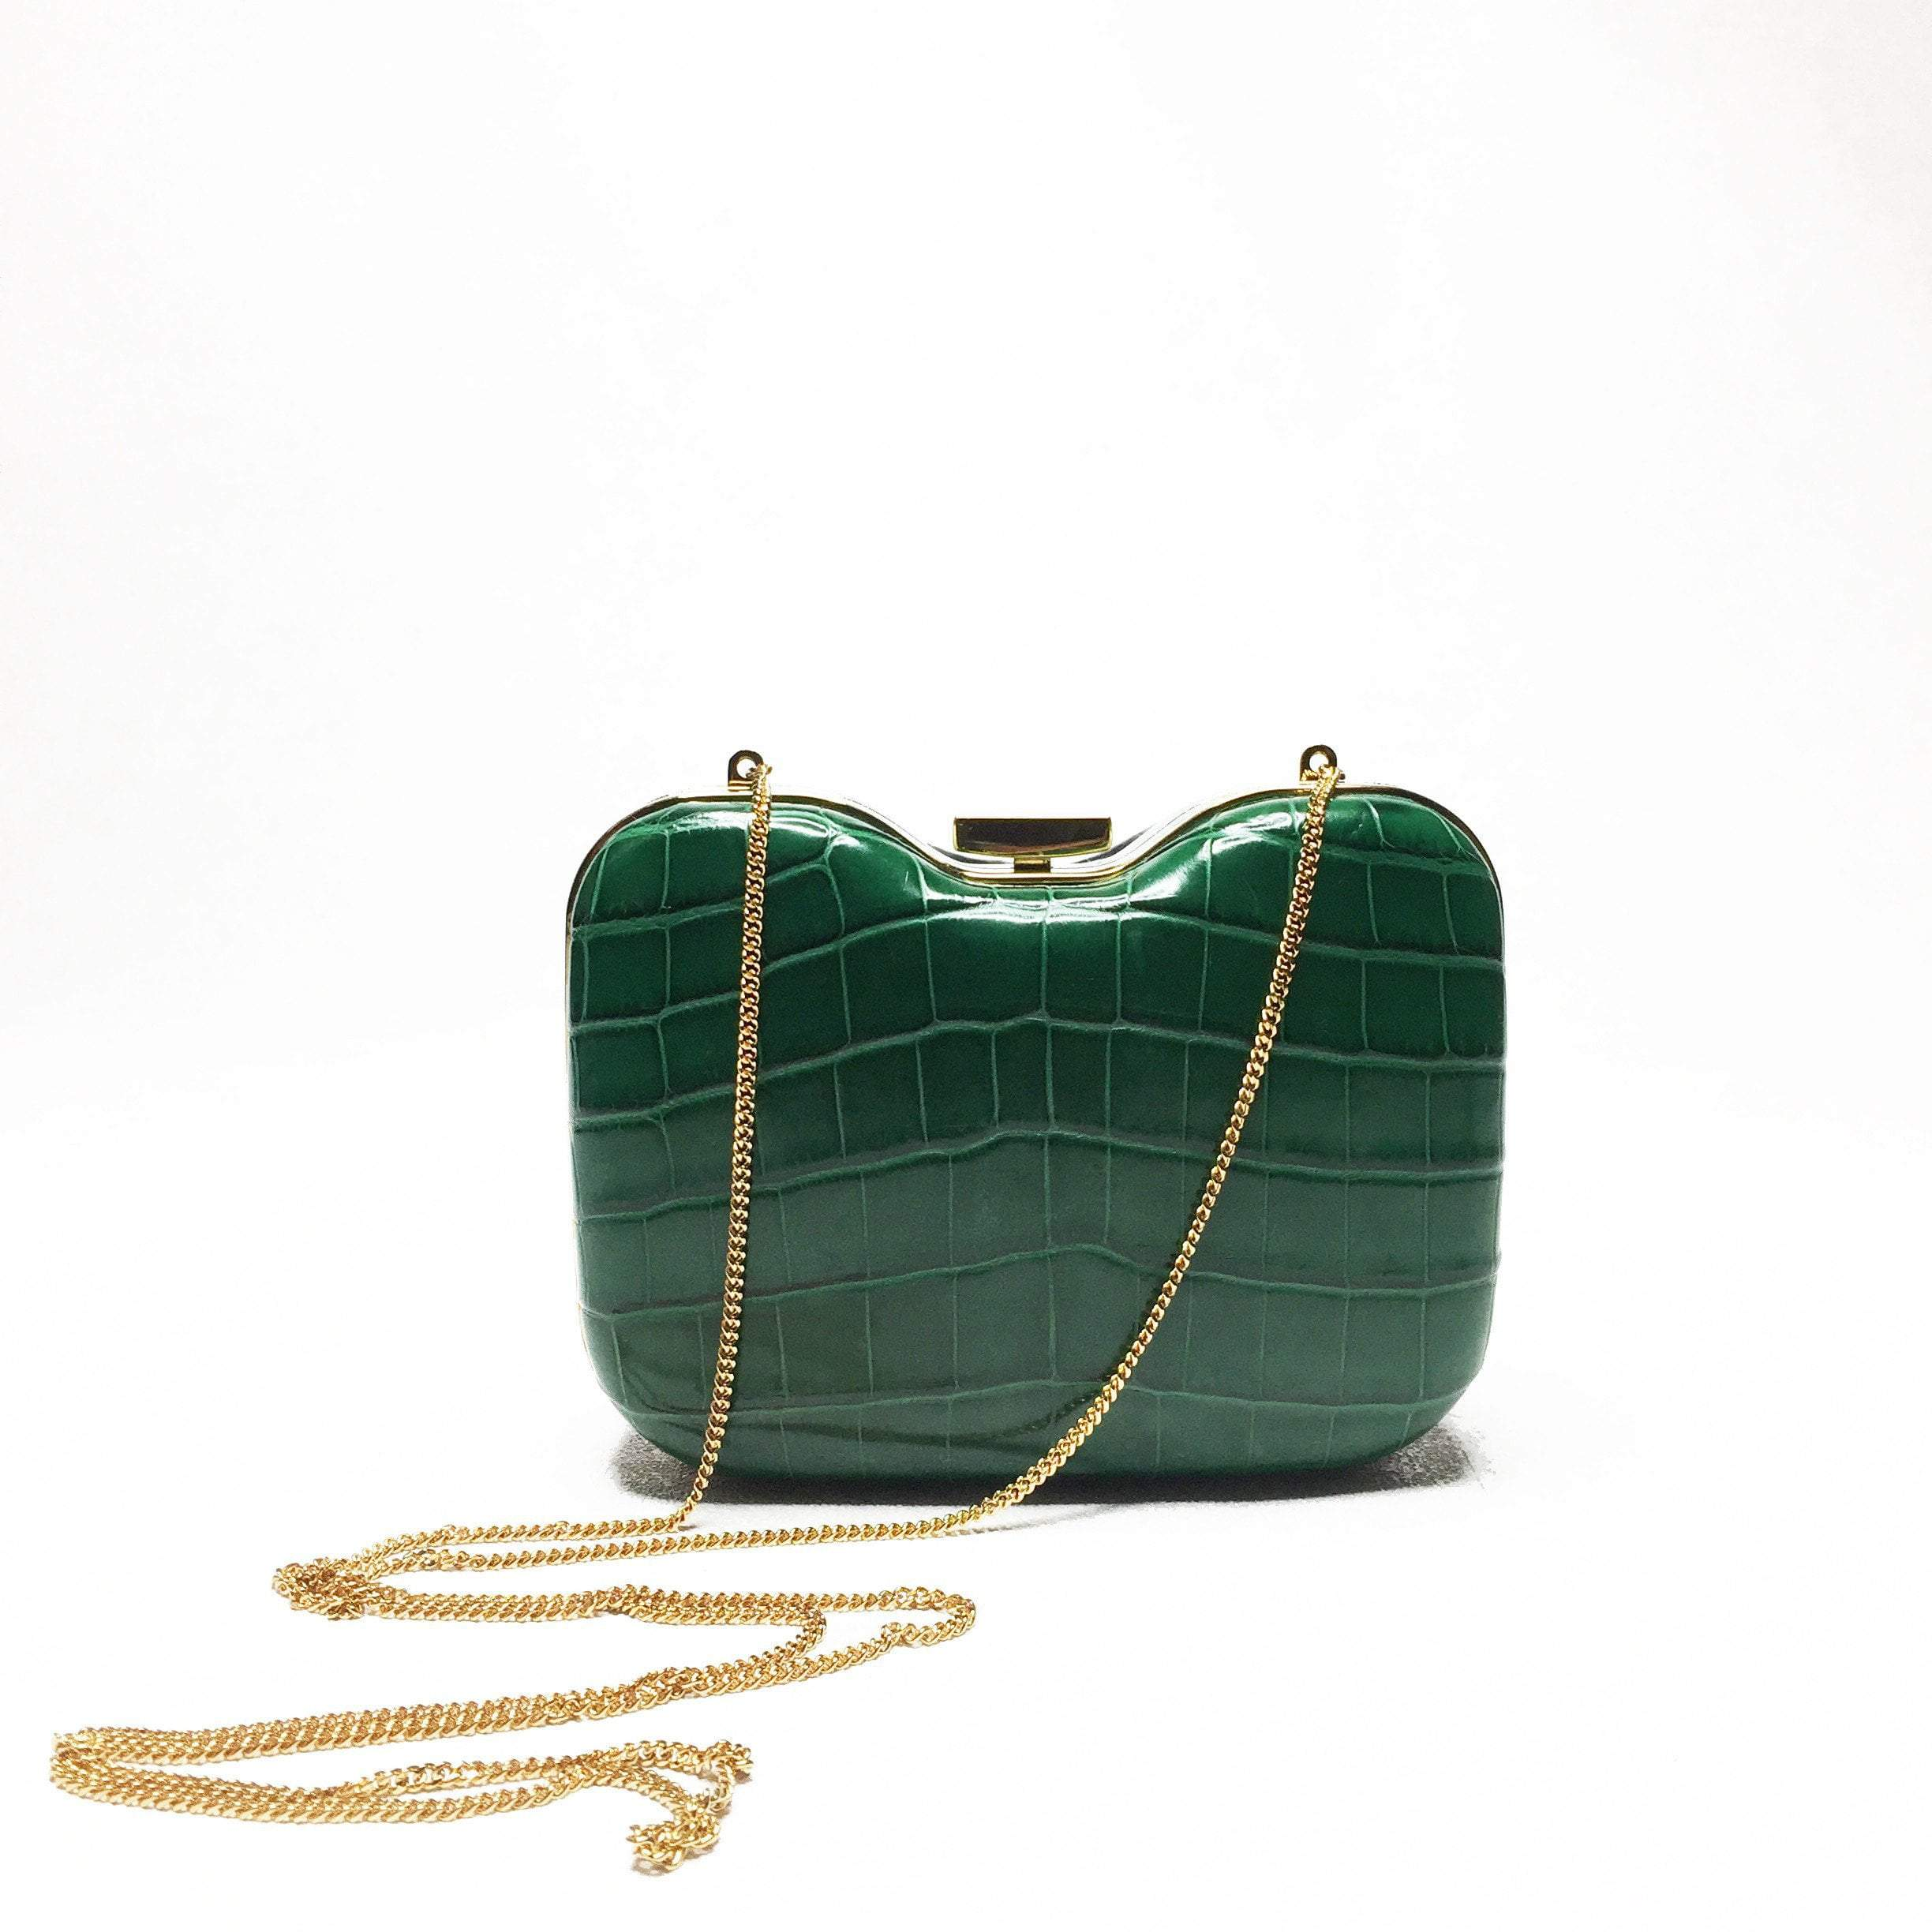 Fendi Green and Midnignt Blue Giano Clutch